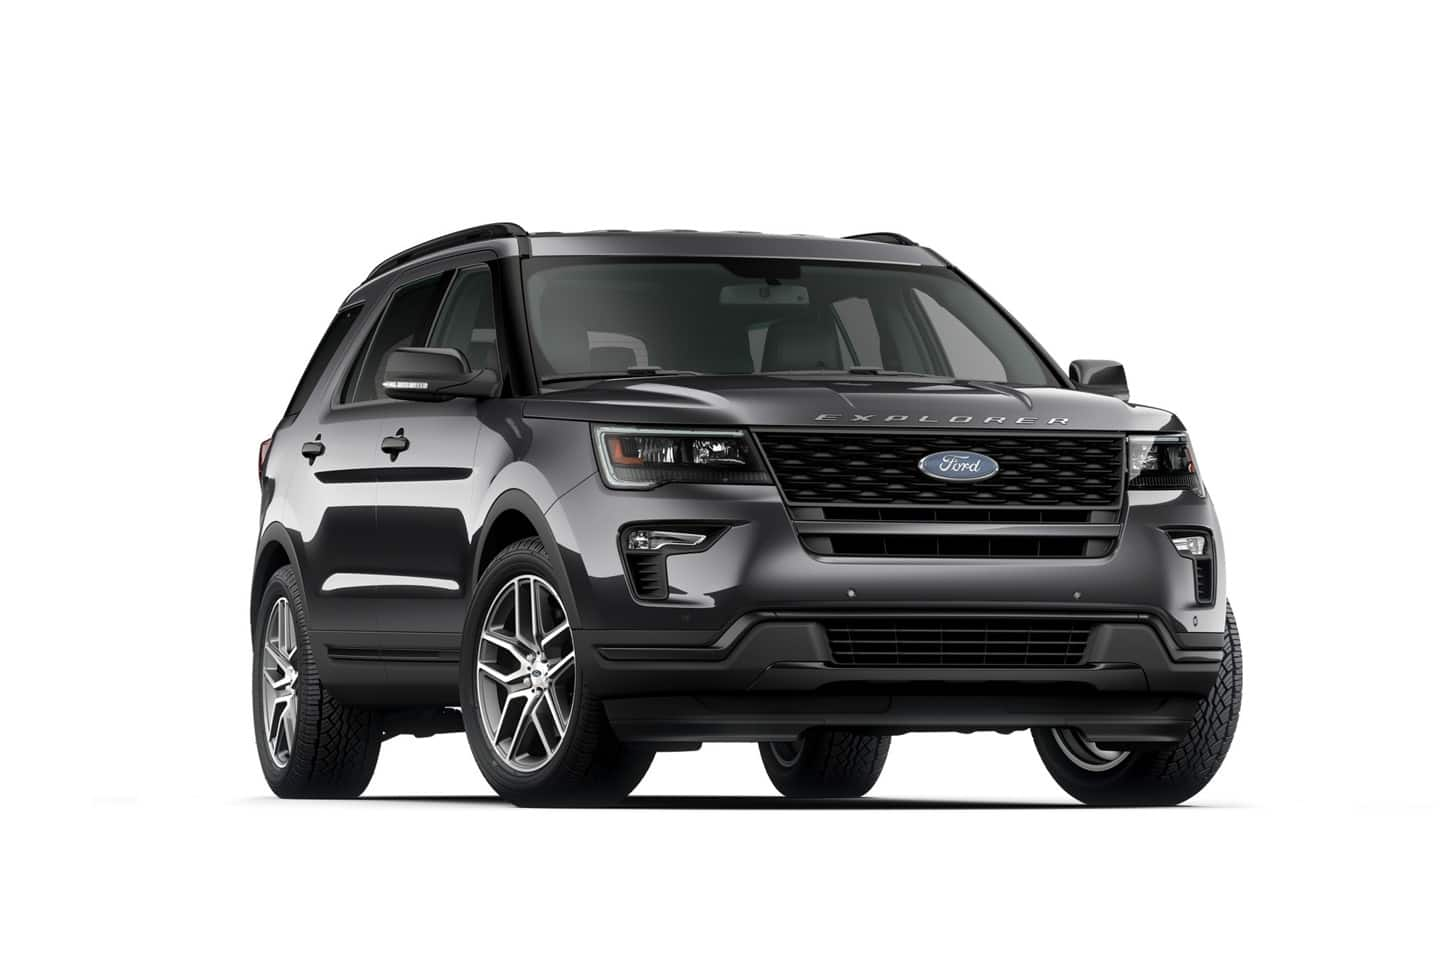 13 Best 2019 Ford Police Utility Exterior